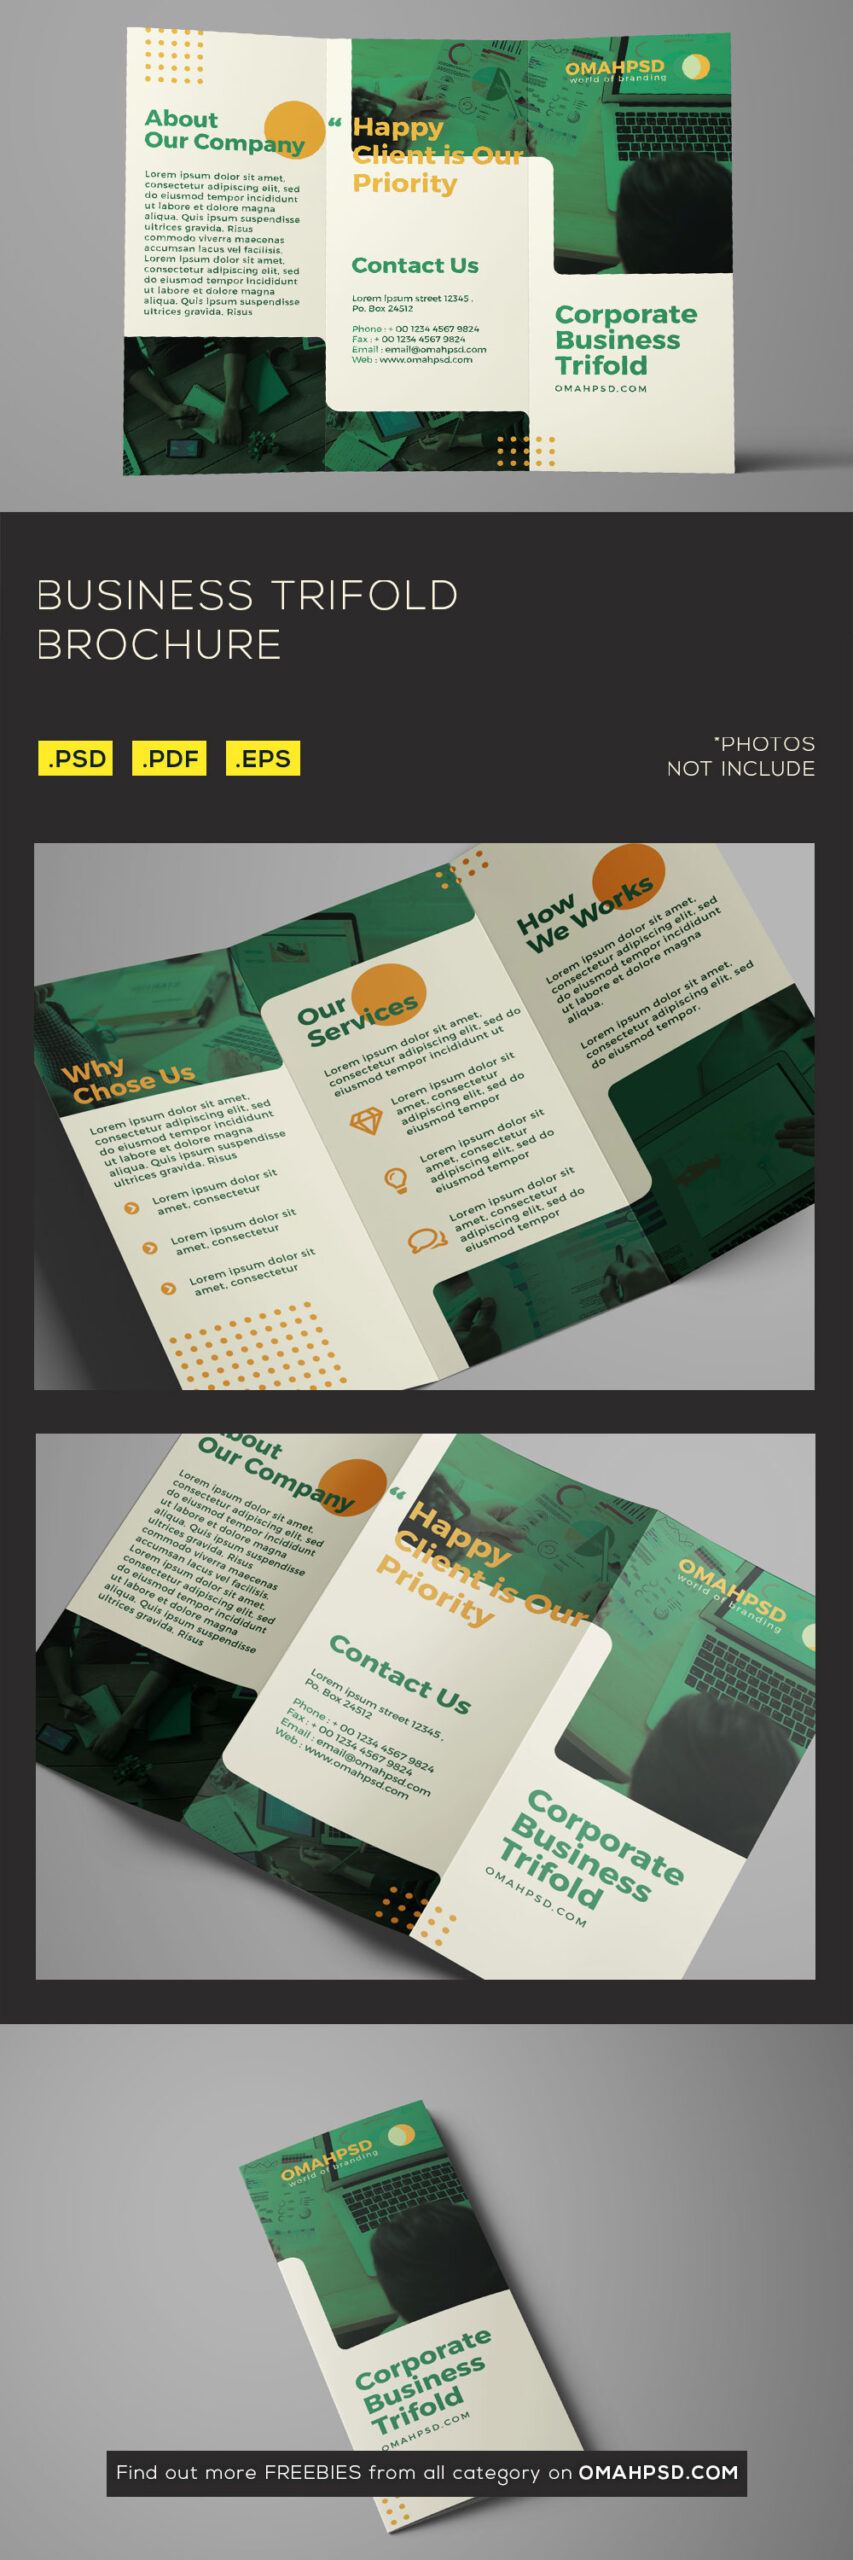 Free Business Trifold Brochure Template Preview